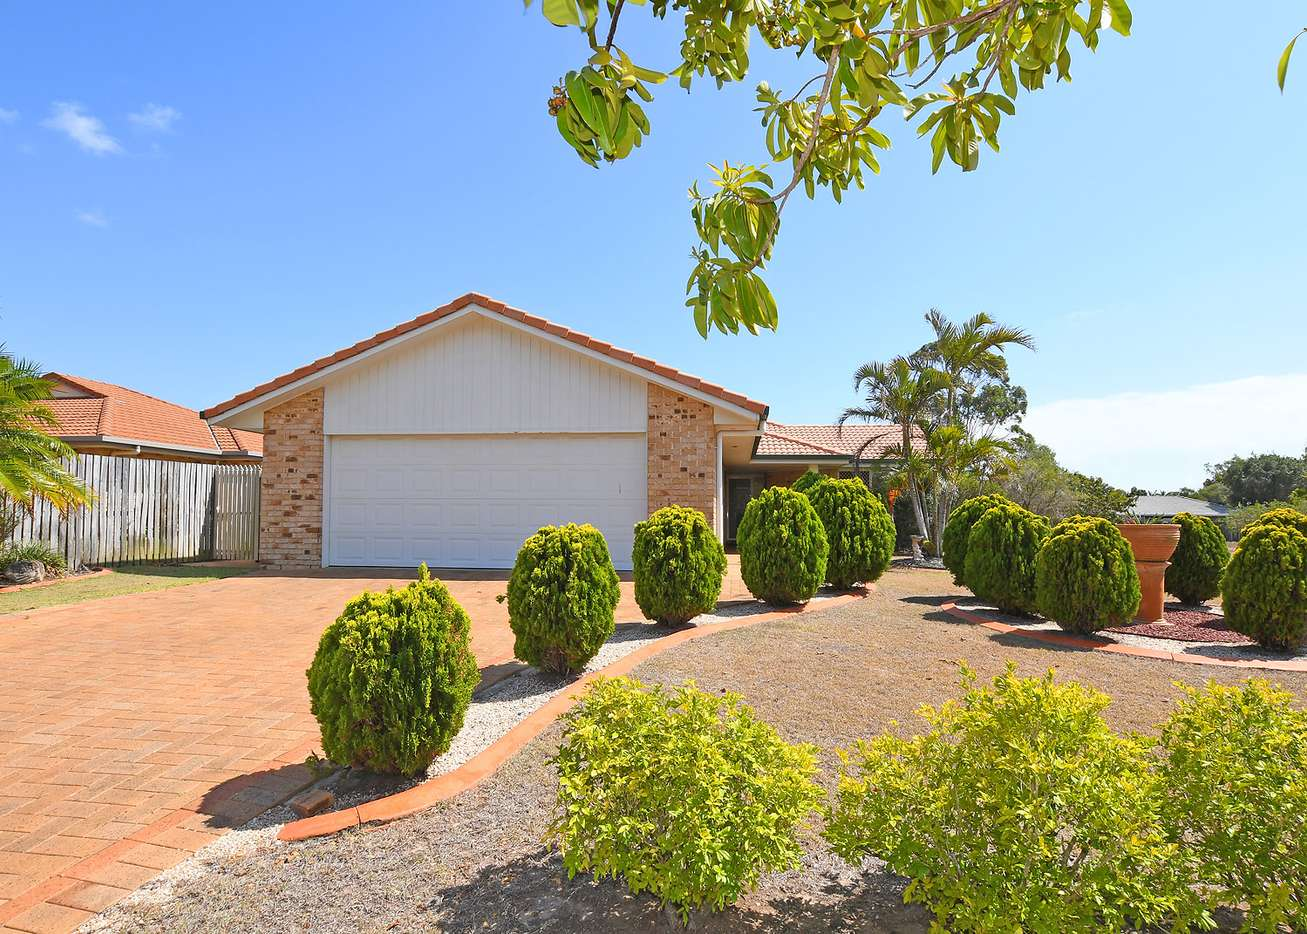 Main view of Homely house listing, 1 GALLERY COURT, Kawungan, QLD 4655